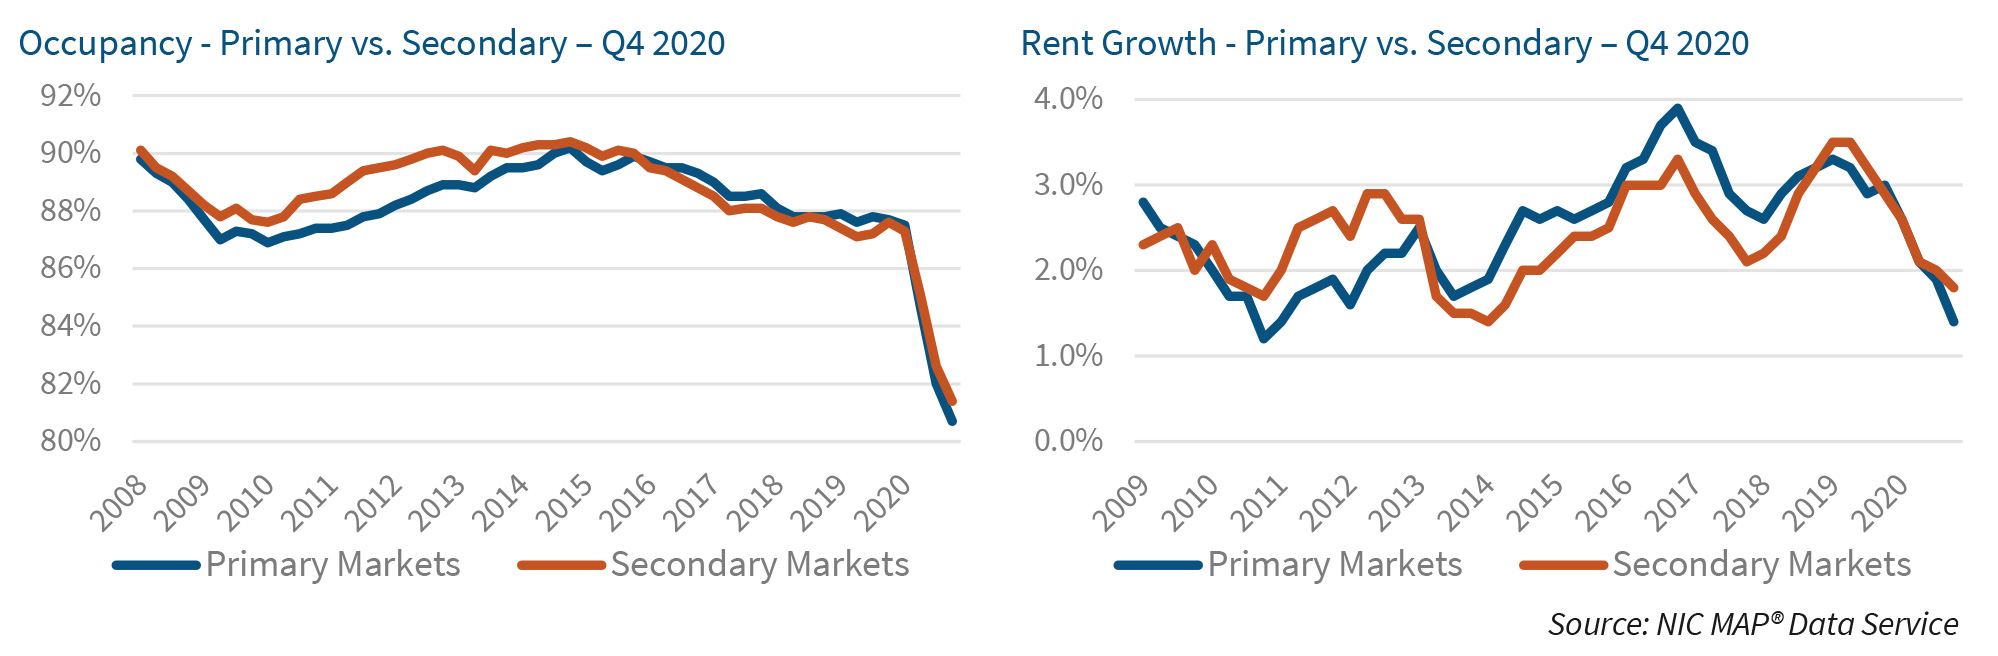 Occupancy - Primary vs. Secondary – Q4 2020 | Rent Growth - Primary vs. Secondary – Q4 2020